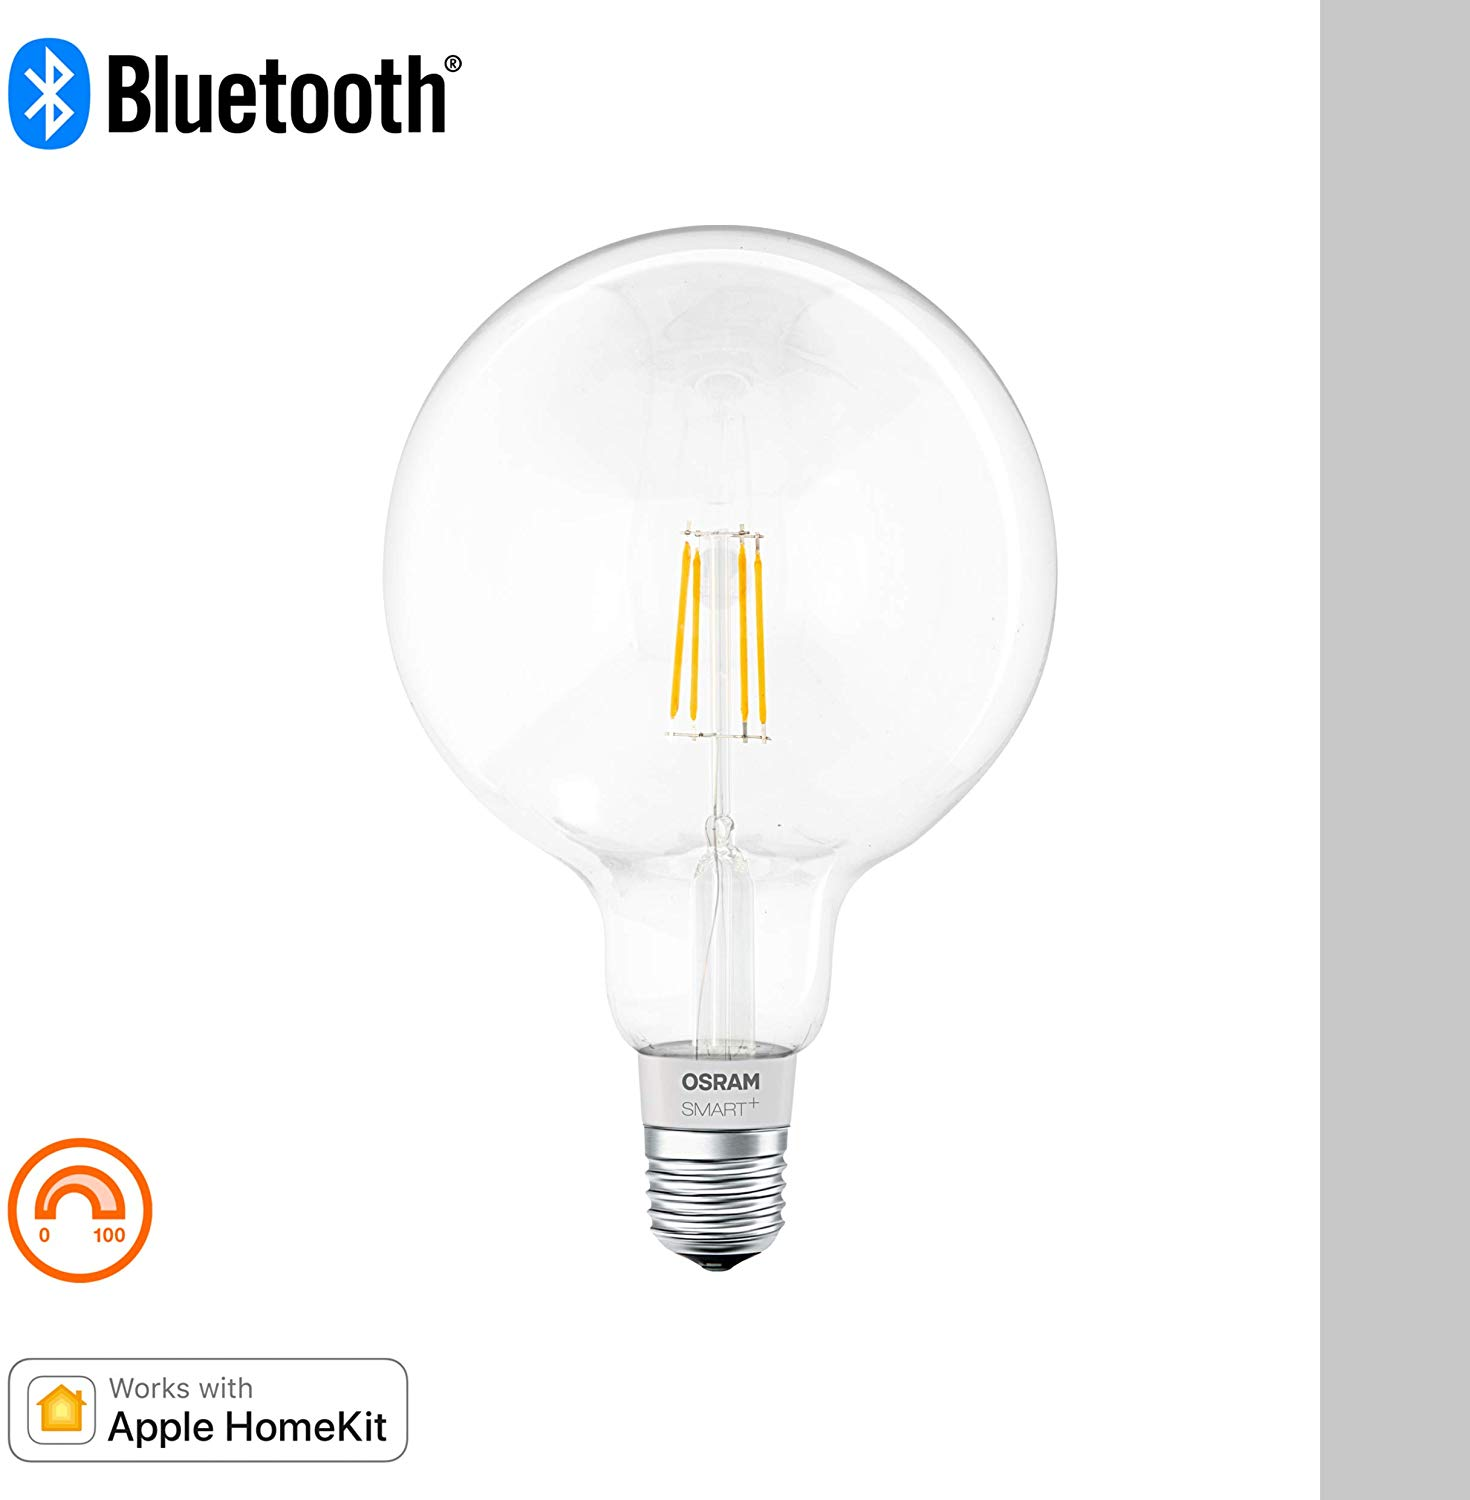 OSRAM LED Lampe Bluetooth amazon